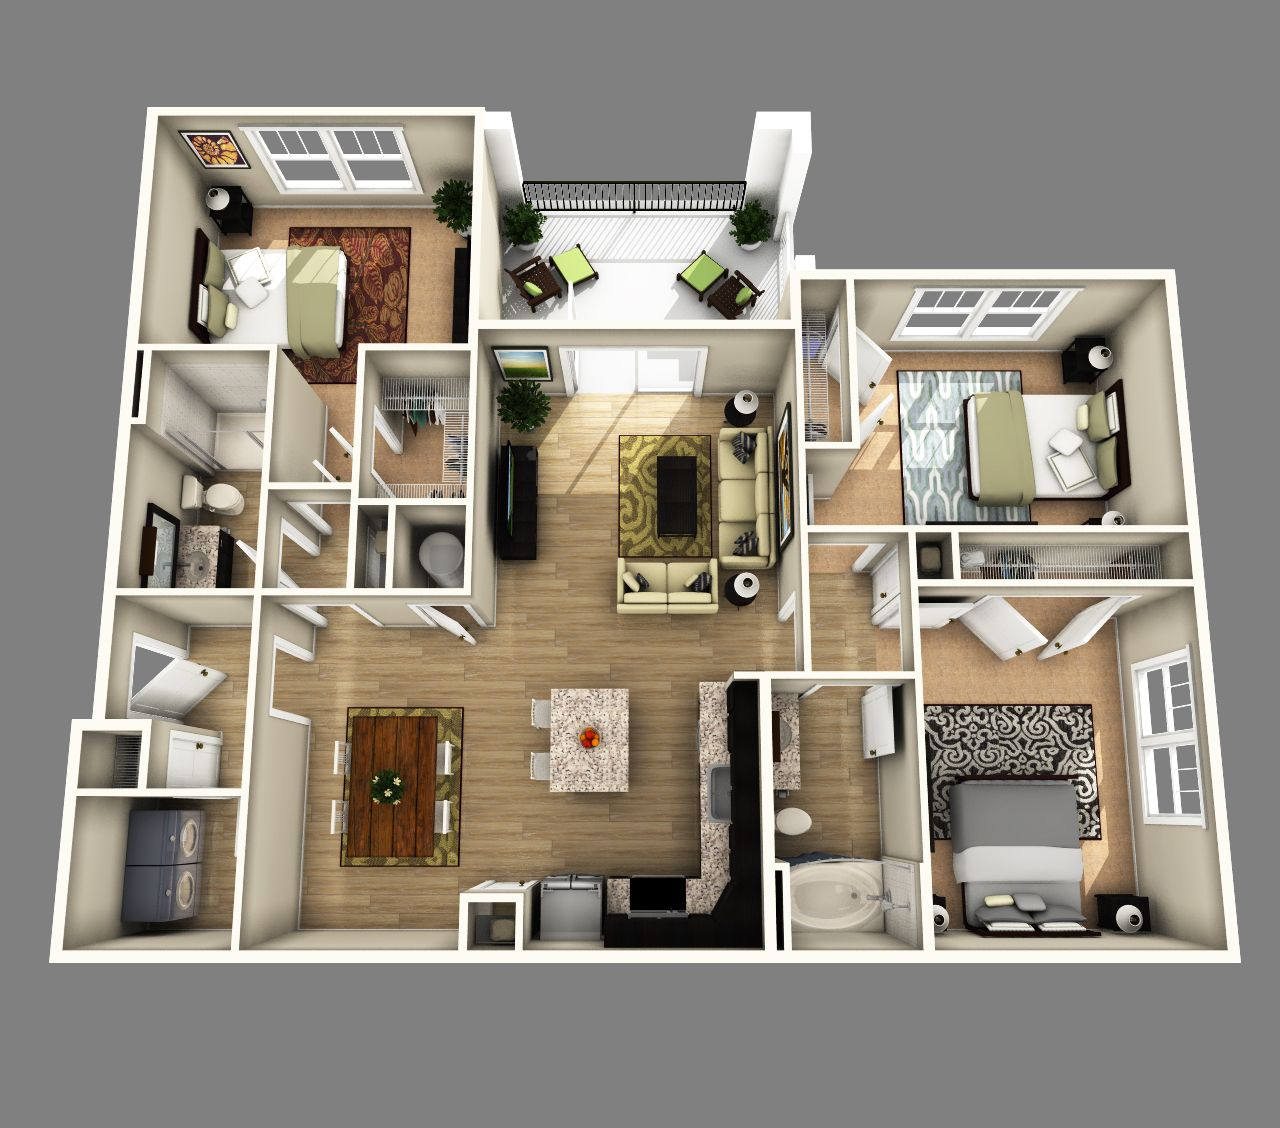 3 bedrooms apartments